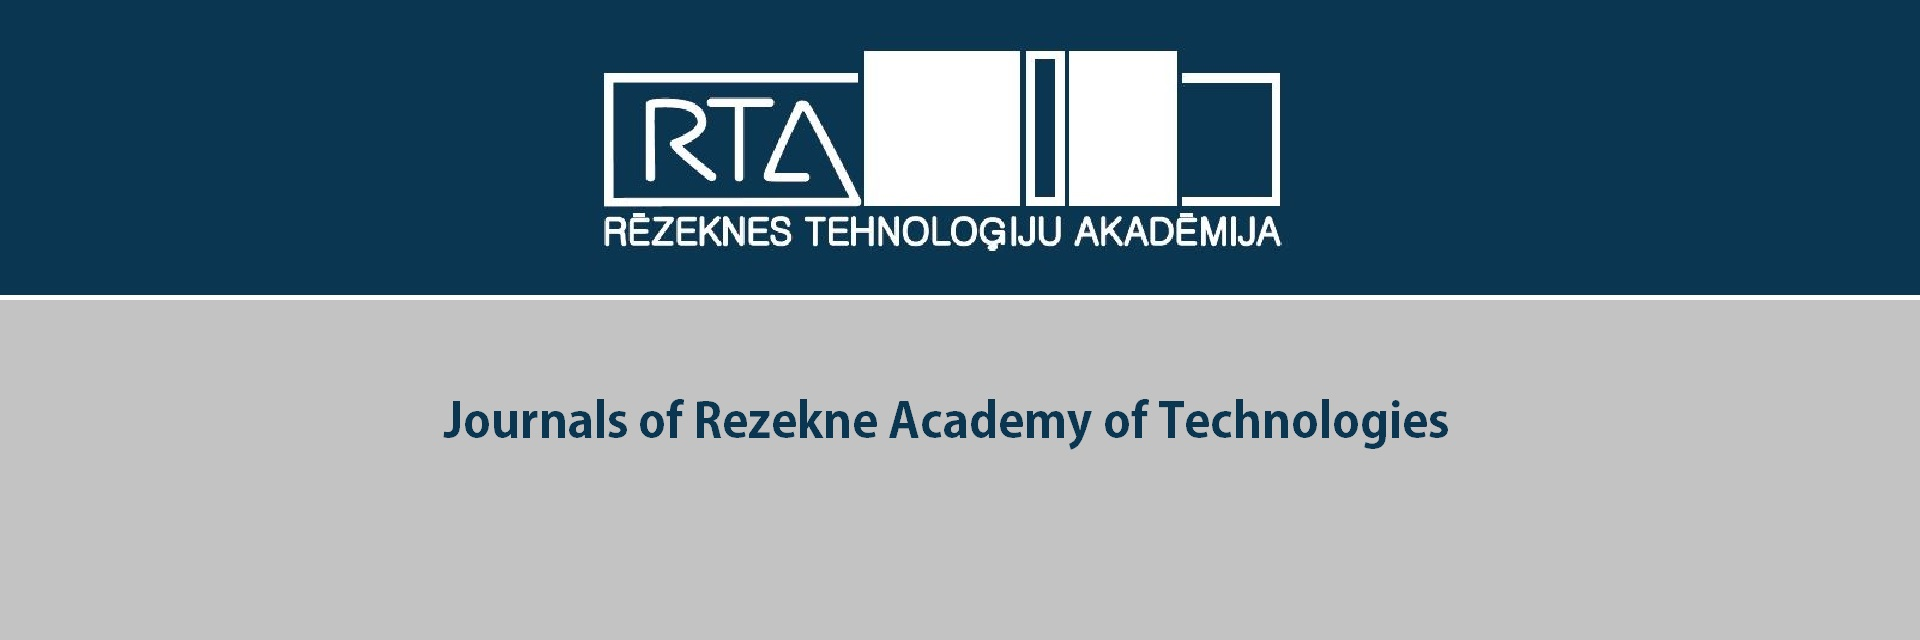 Journals of Rezekne Academy of Technologies